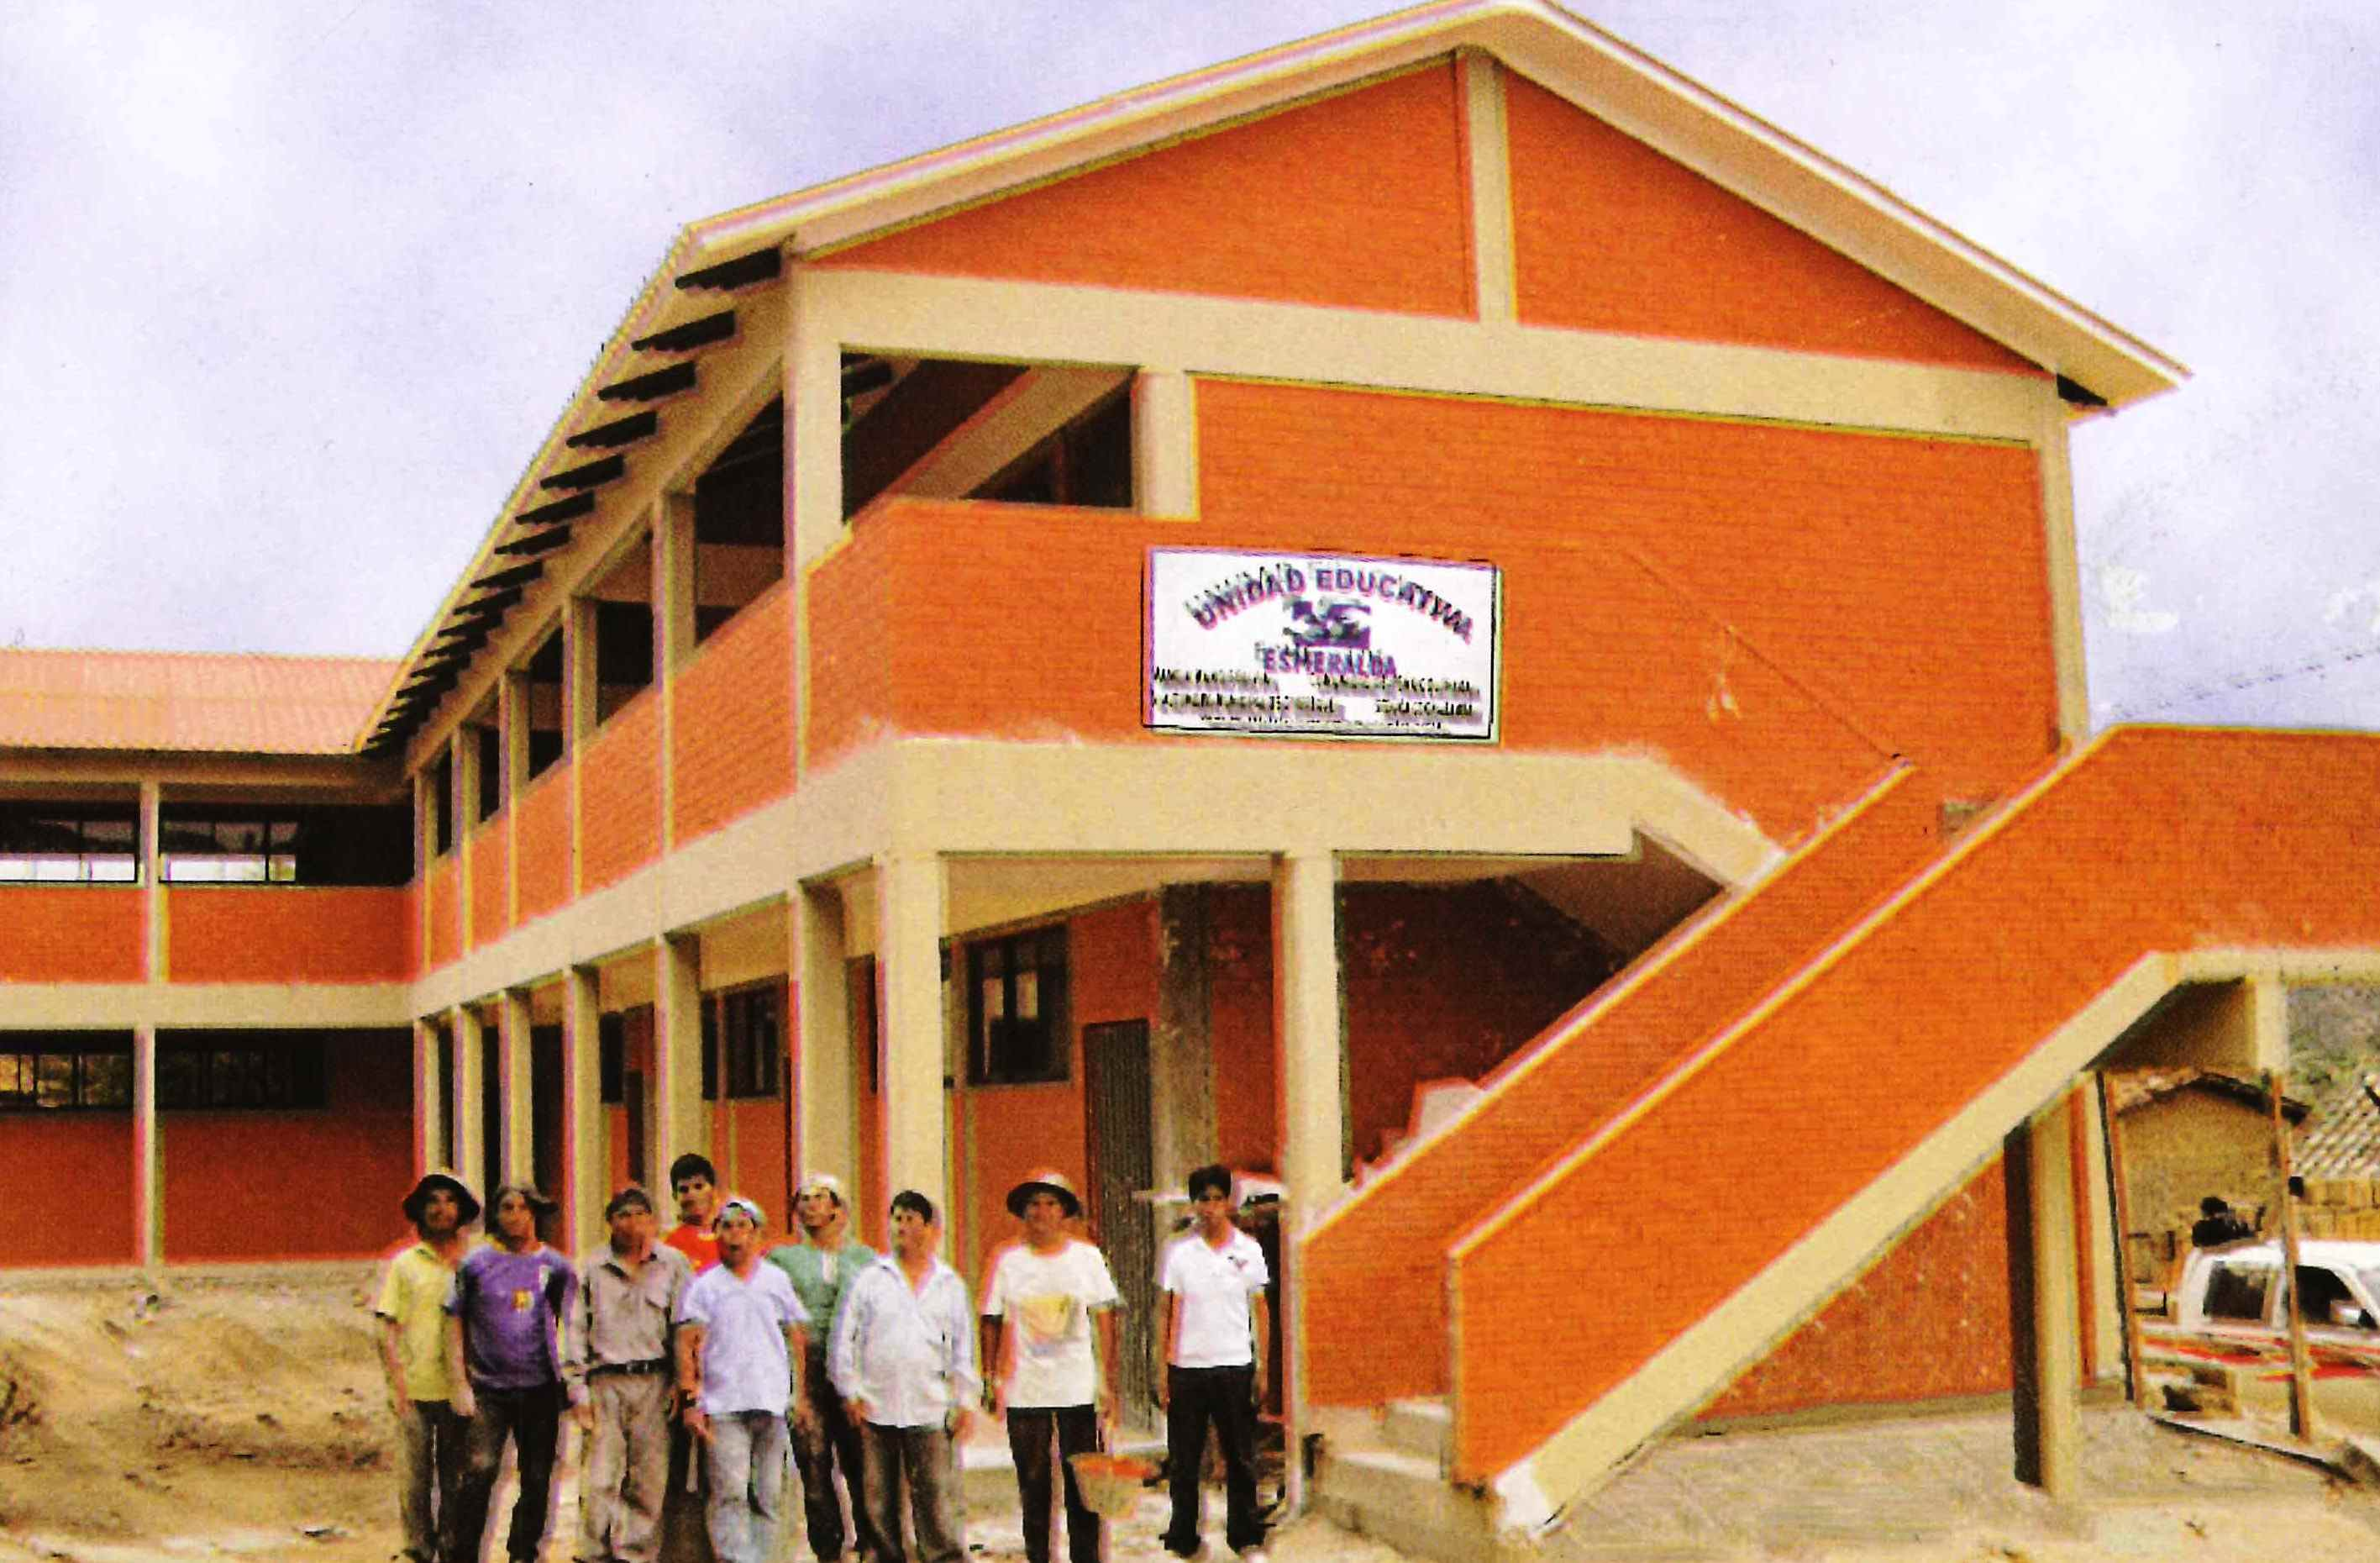 Esmeralda School, built with funds raised at last year's event